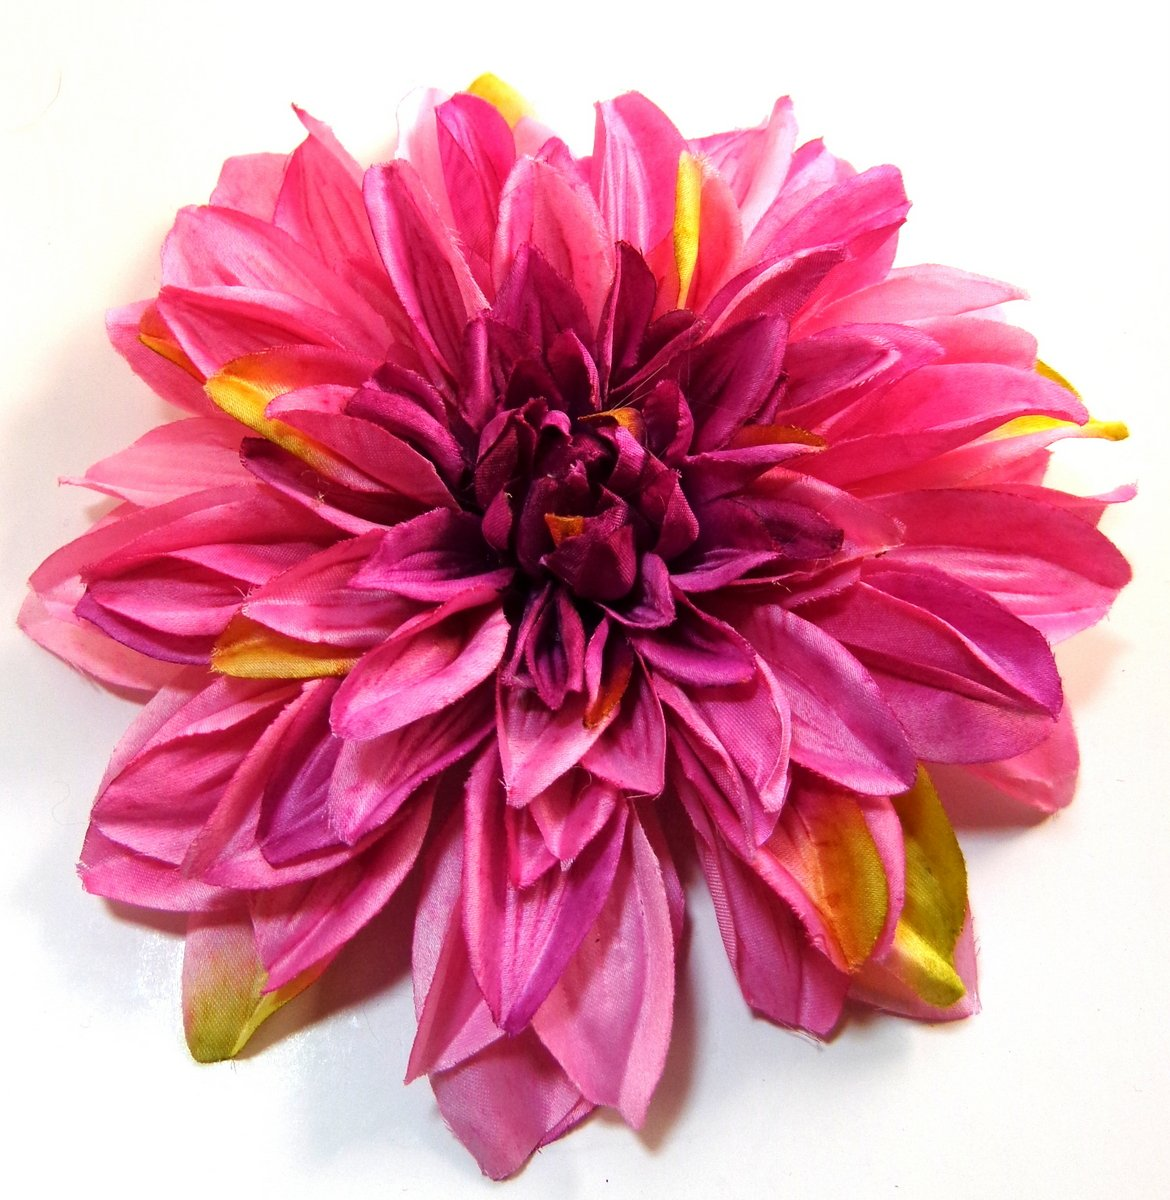 Cheap blue dahlia flower find blue dahlia flower deals on line at get quotations extra large 7 inch pink dahlia hair flower izmirmasajfo